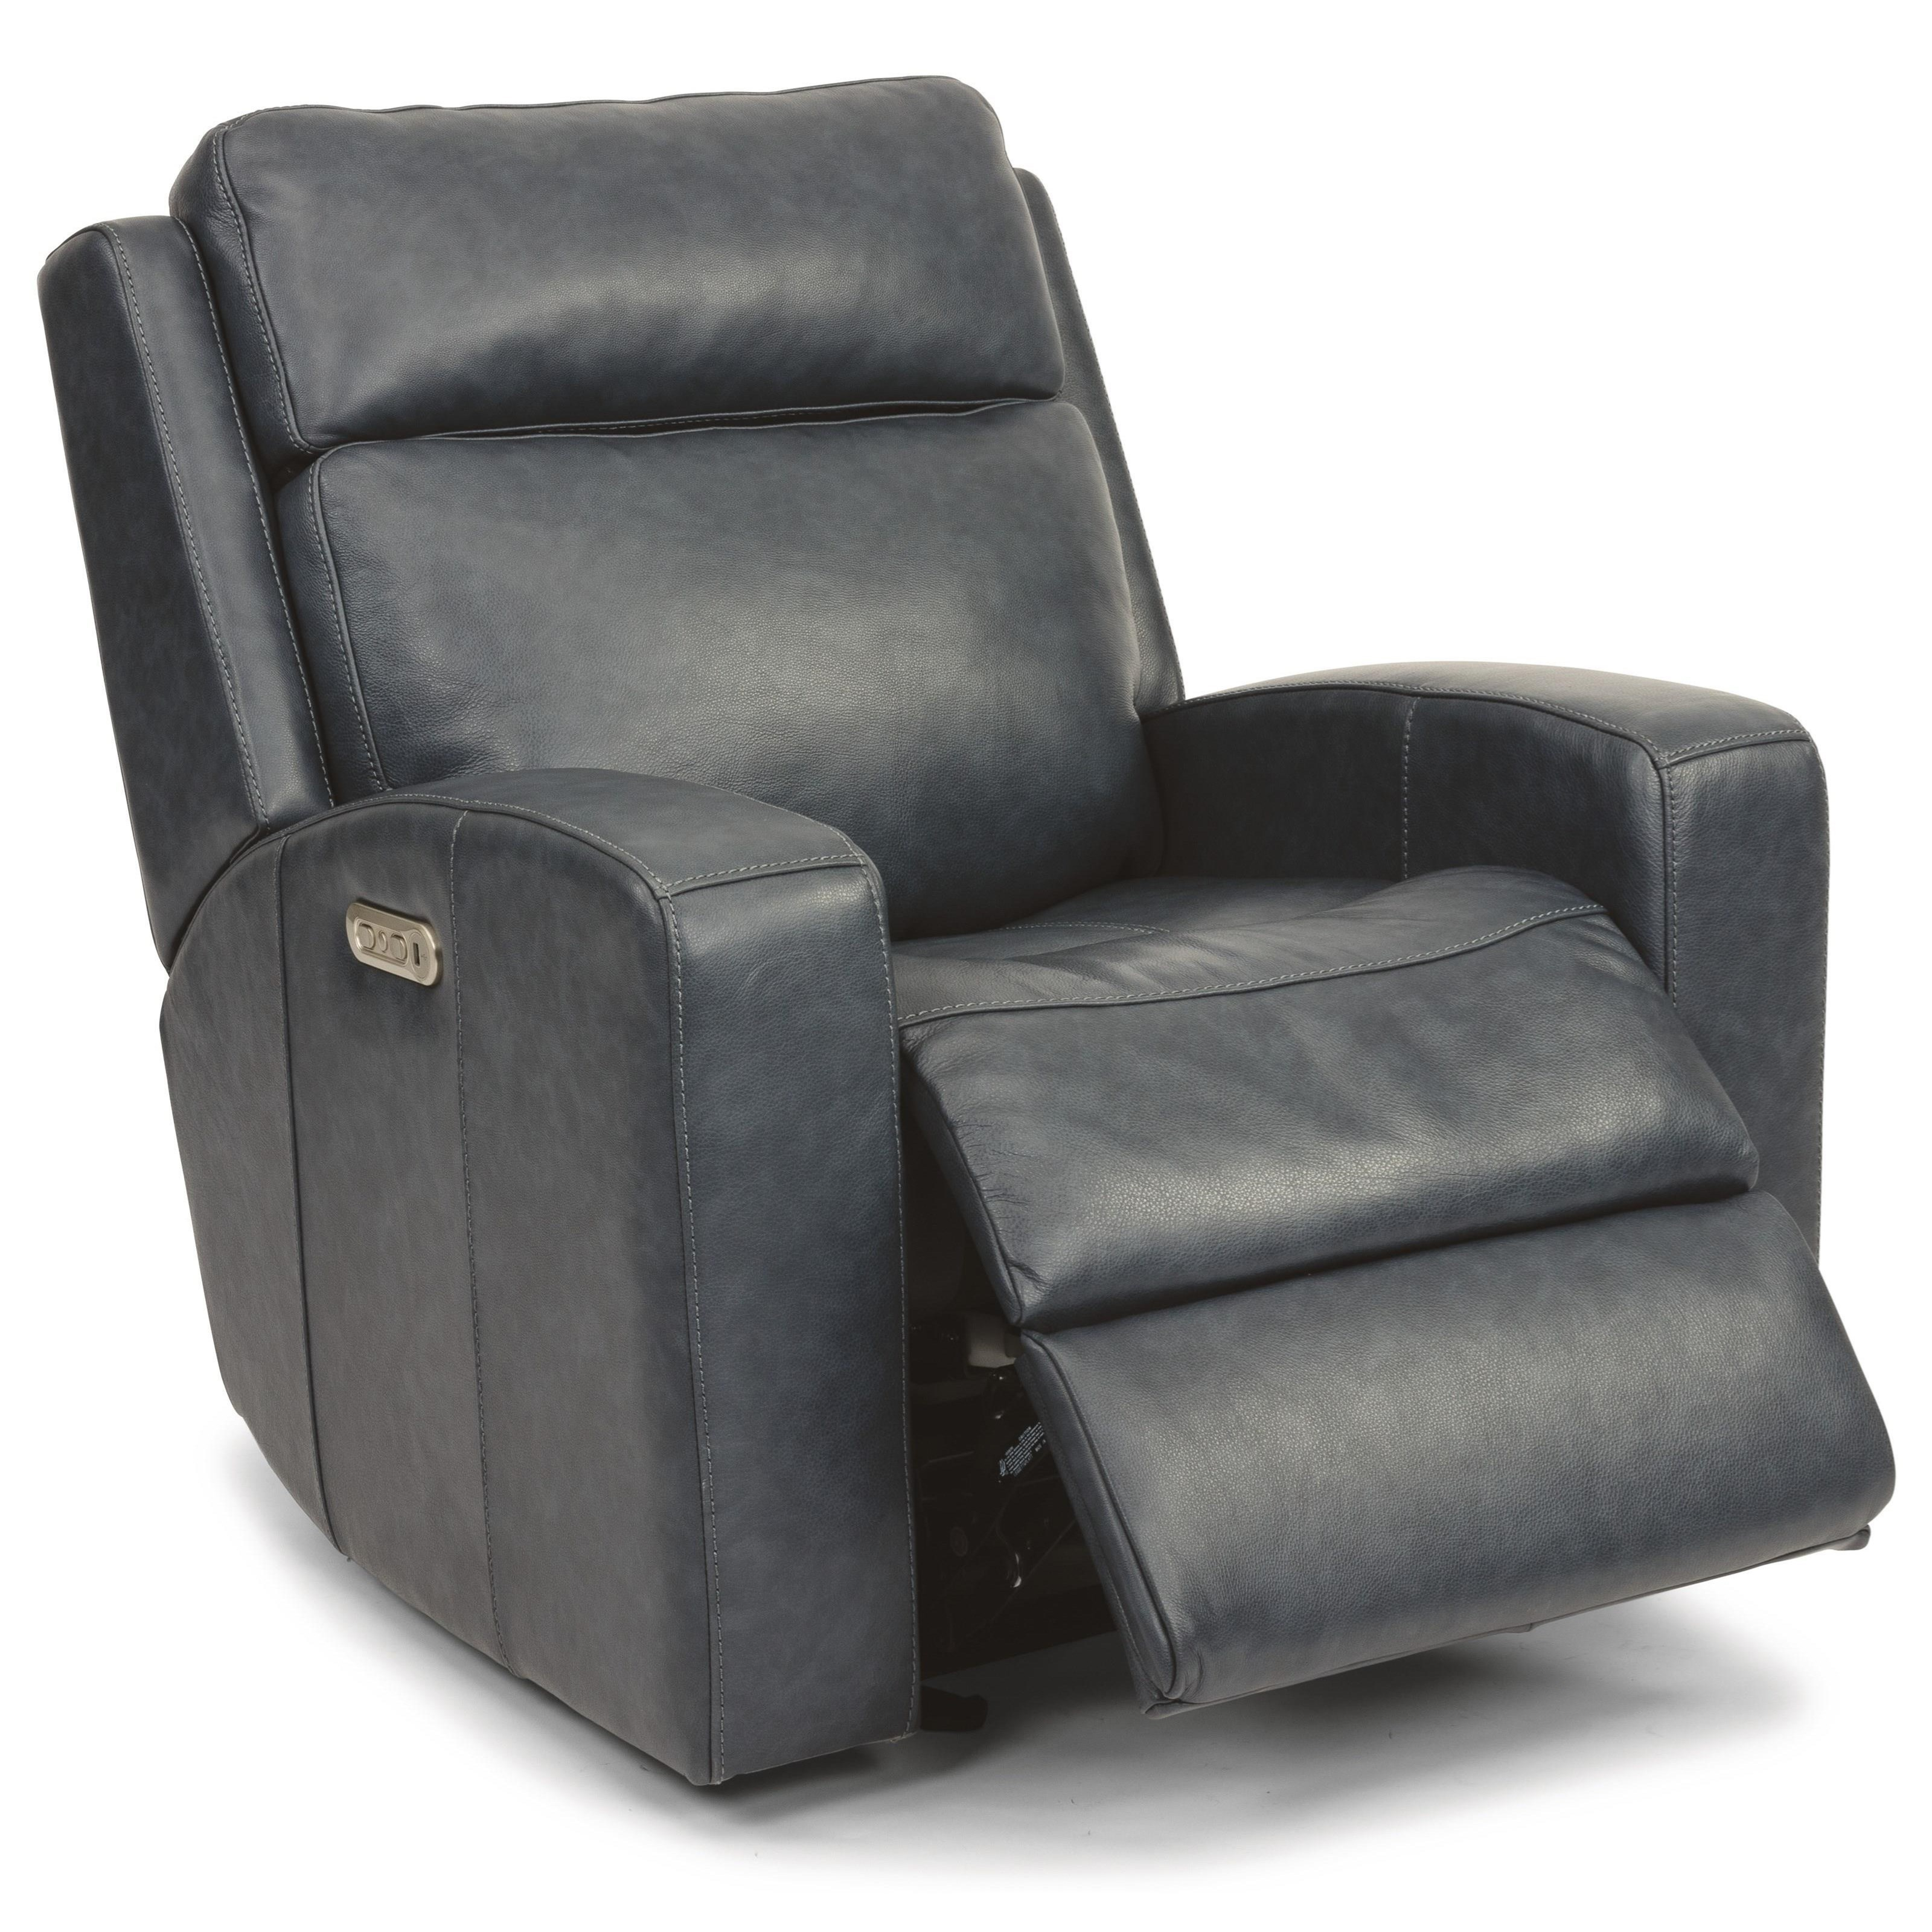 Latitudes - Cody Power Gliding Recliner by Flexsteel at Williams & Kay